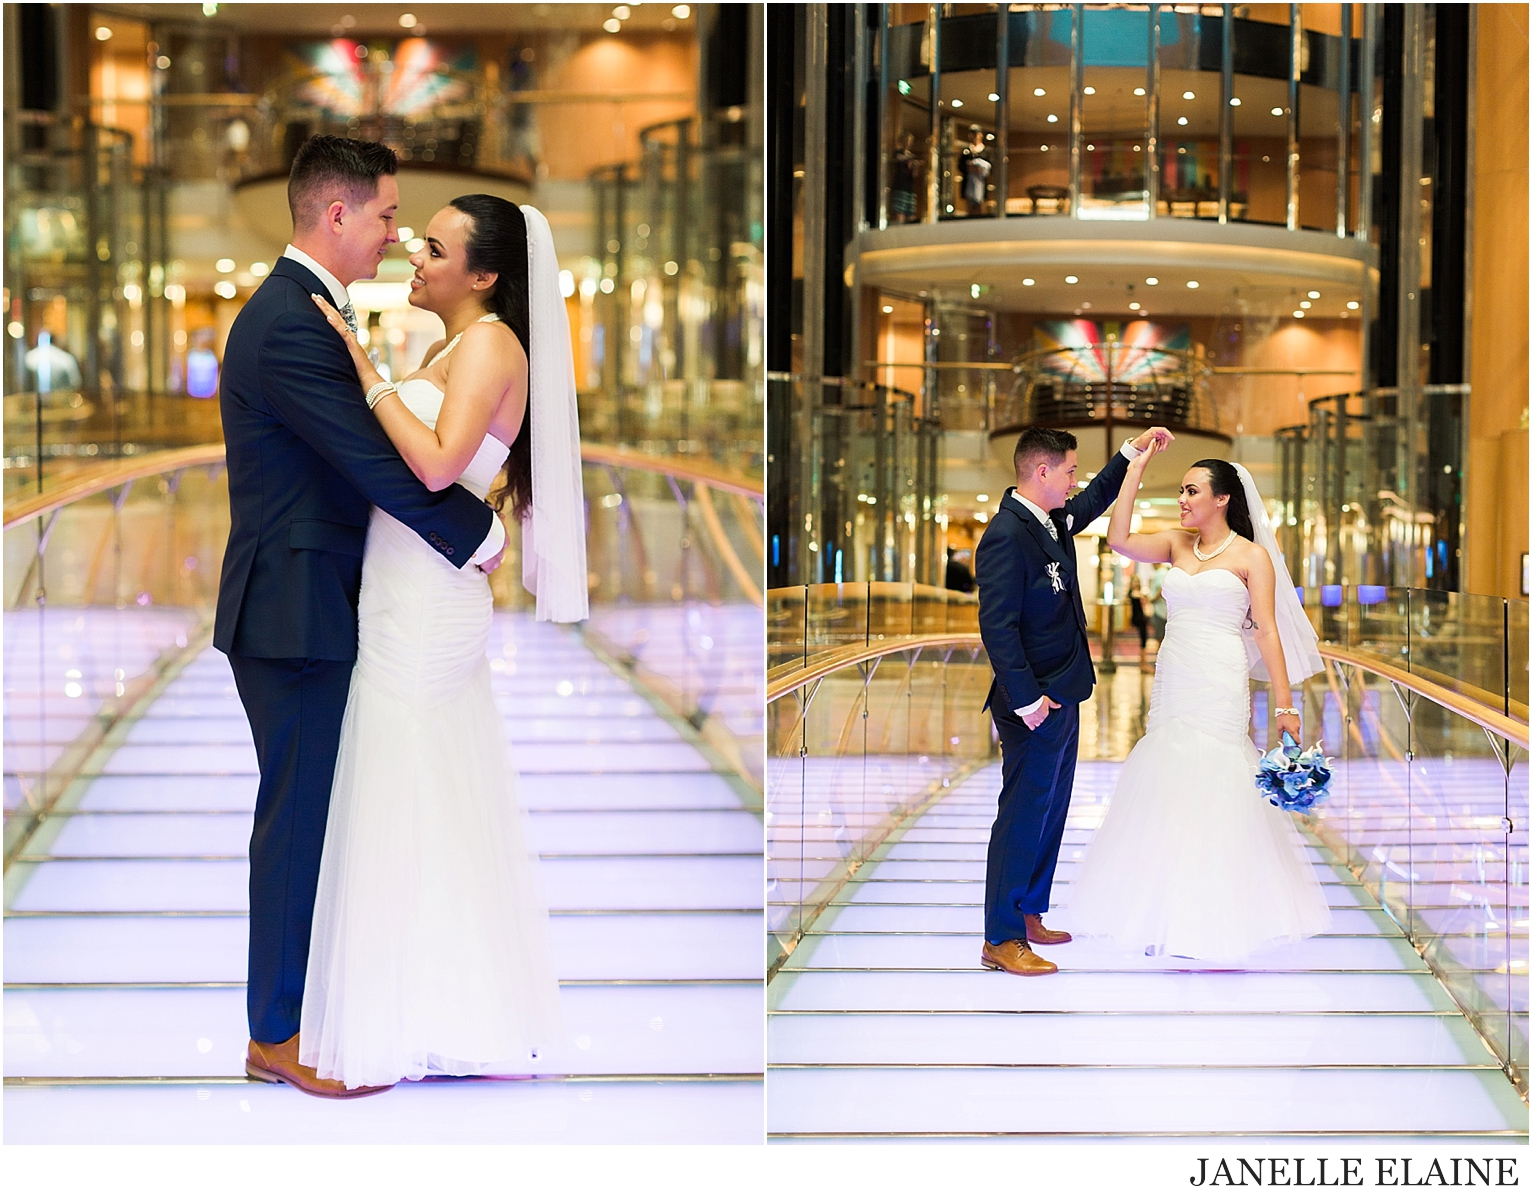 white wedding-royal caribbean-janelle elaine photography-183.jpg